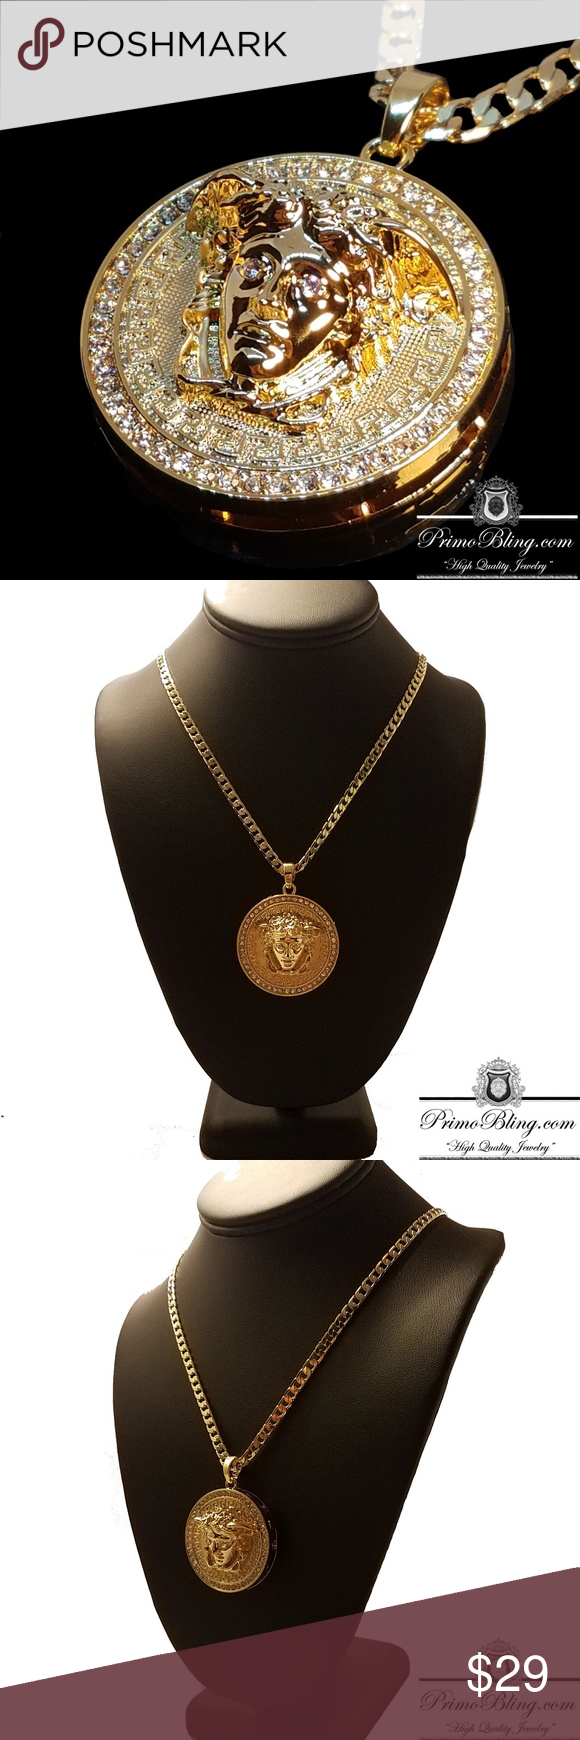 gold with mary collection and silver vatican st necklace medallion free postcard peter vacogoandsim